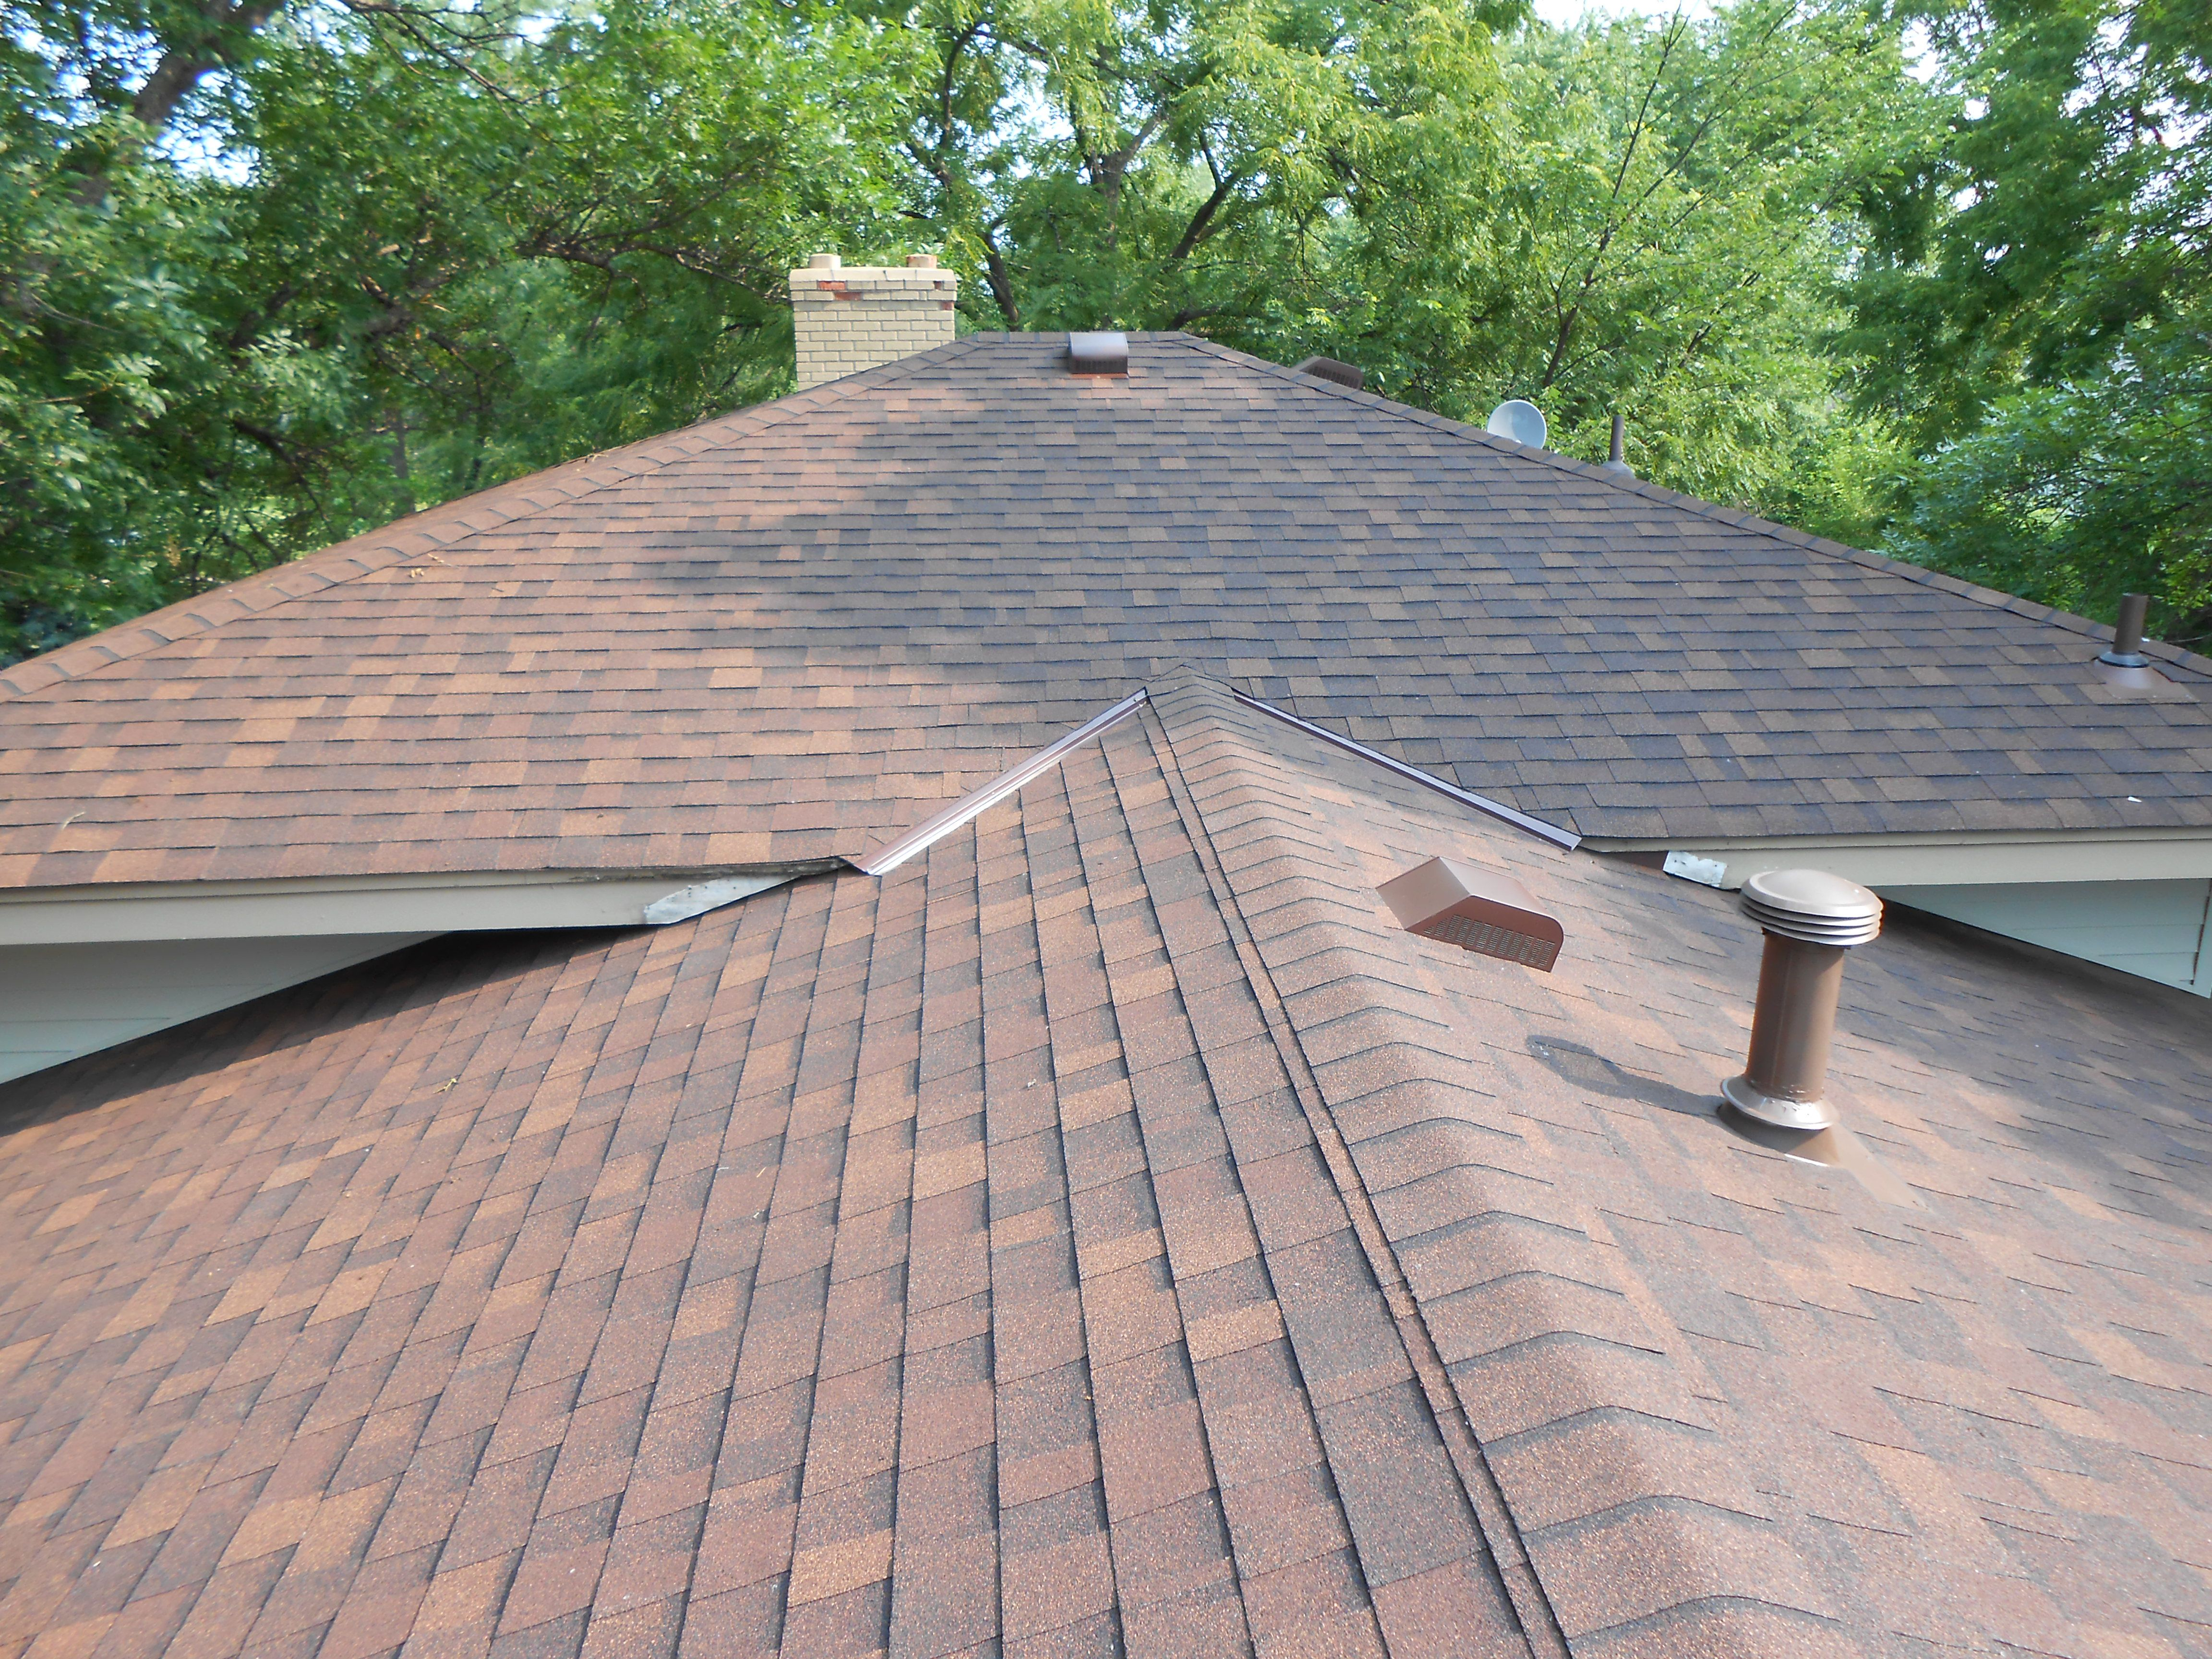 Best Roofing Asphalt Shingles Owens Corning Roof 400 x 300